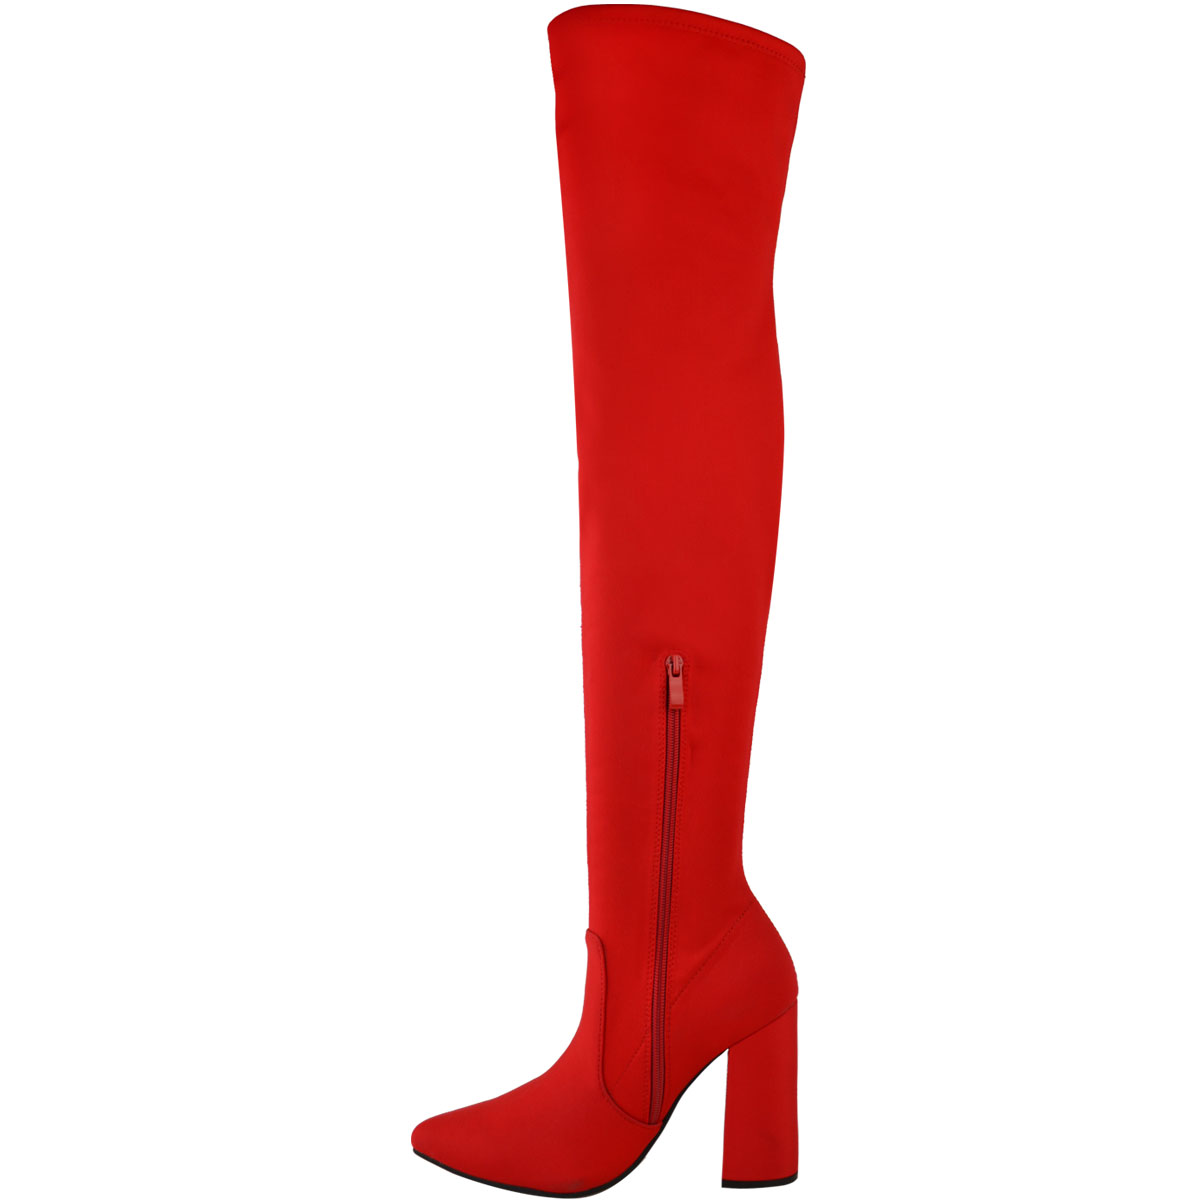 Womens-Ladies-Thigh-High-Boots-Lycra-Over-The-Knee-Pointy-Block-High-Heels-Size Indexbild 10